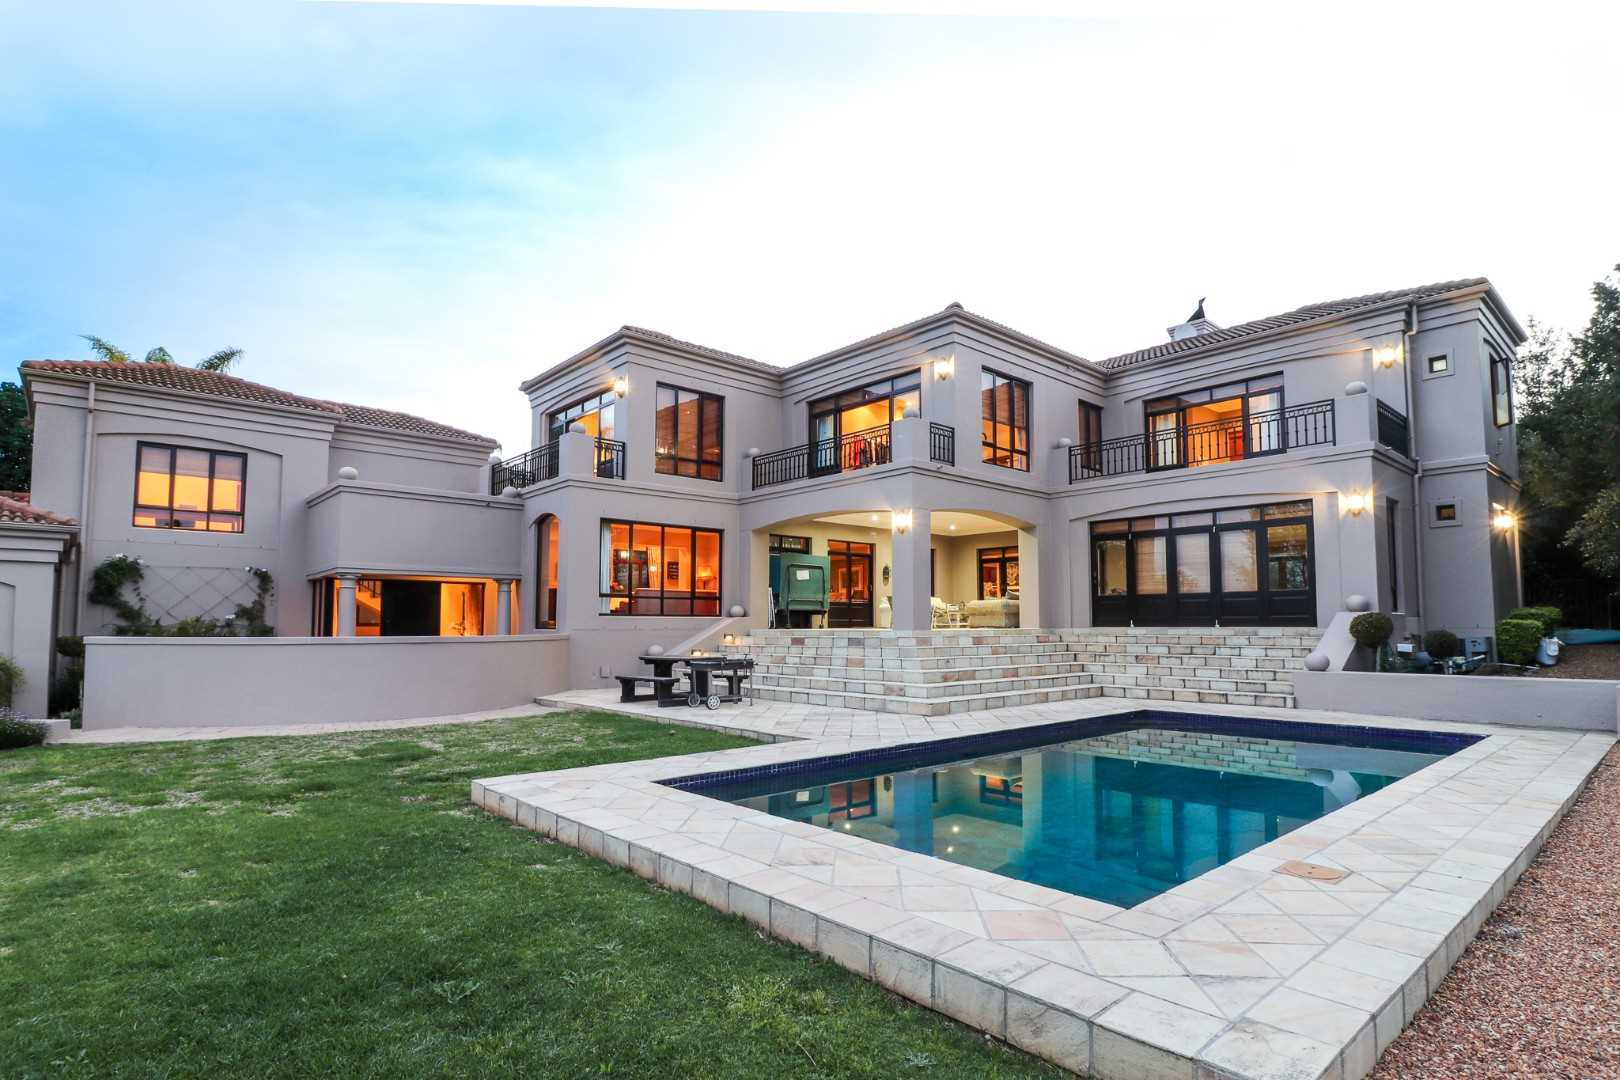 Extra large 5-bedroom executive home in Durbanville